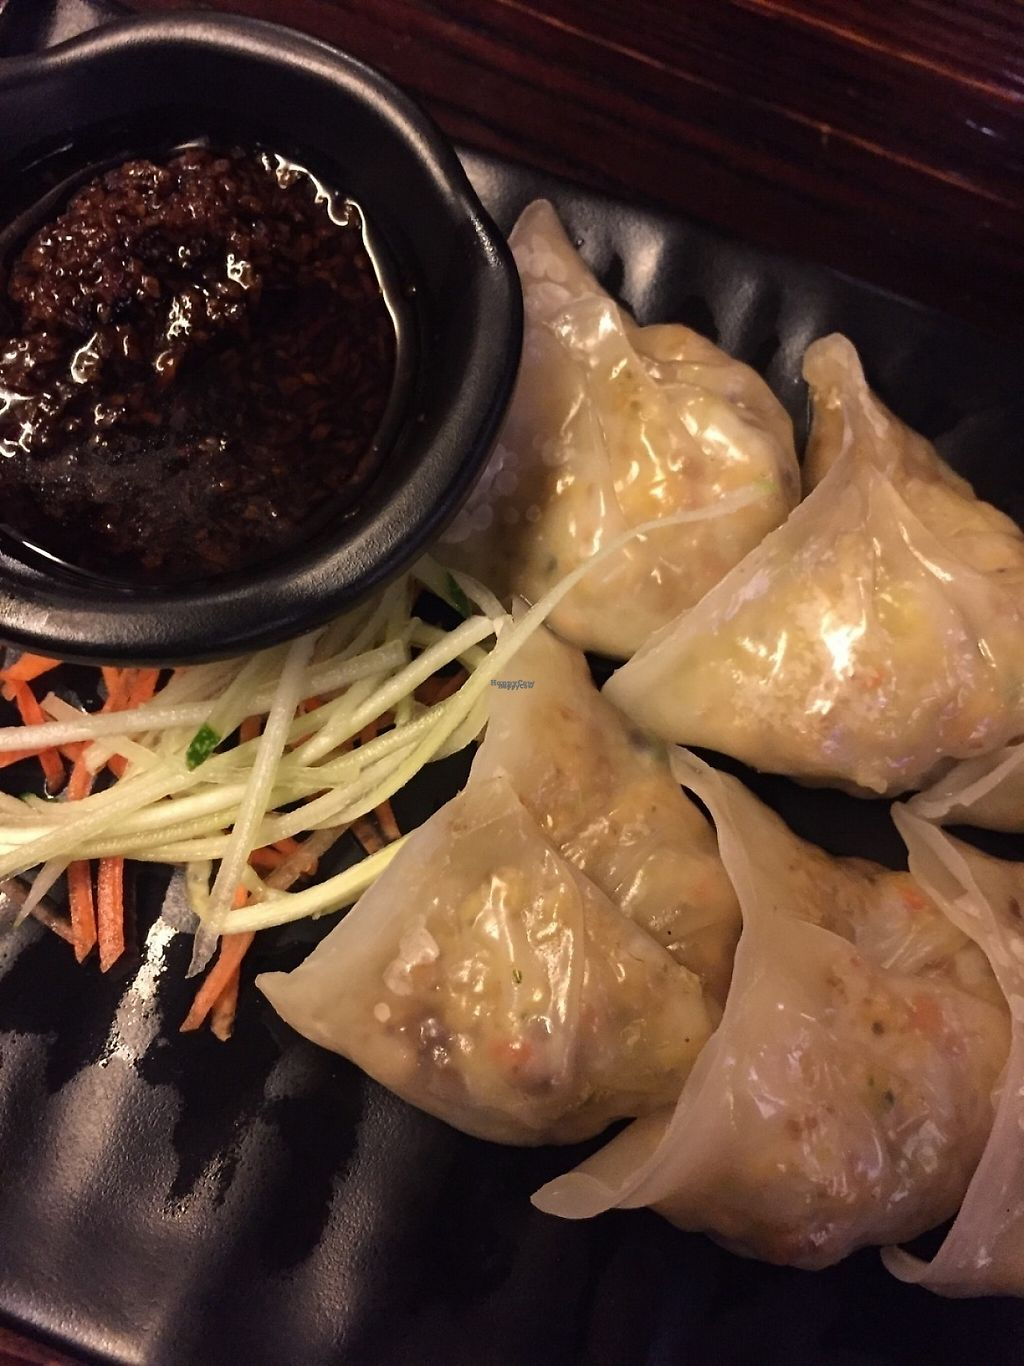 "Photo of Life Cafe  by <a href=""/members/profile/sarah_abdulm"">sarah_abdulm</a> <br/>Vege poached dumplings. I think these are vegan as they are no eggs or dairy <br/> January 24, 2017  - <a href='/contact/abuse/image/25208/215599'>Report</a>"